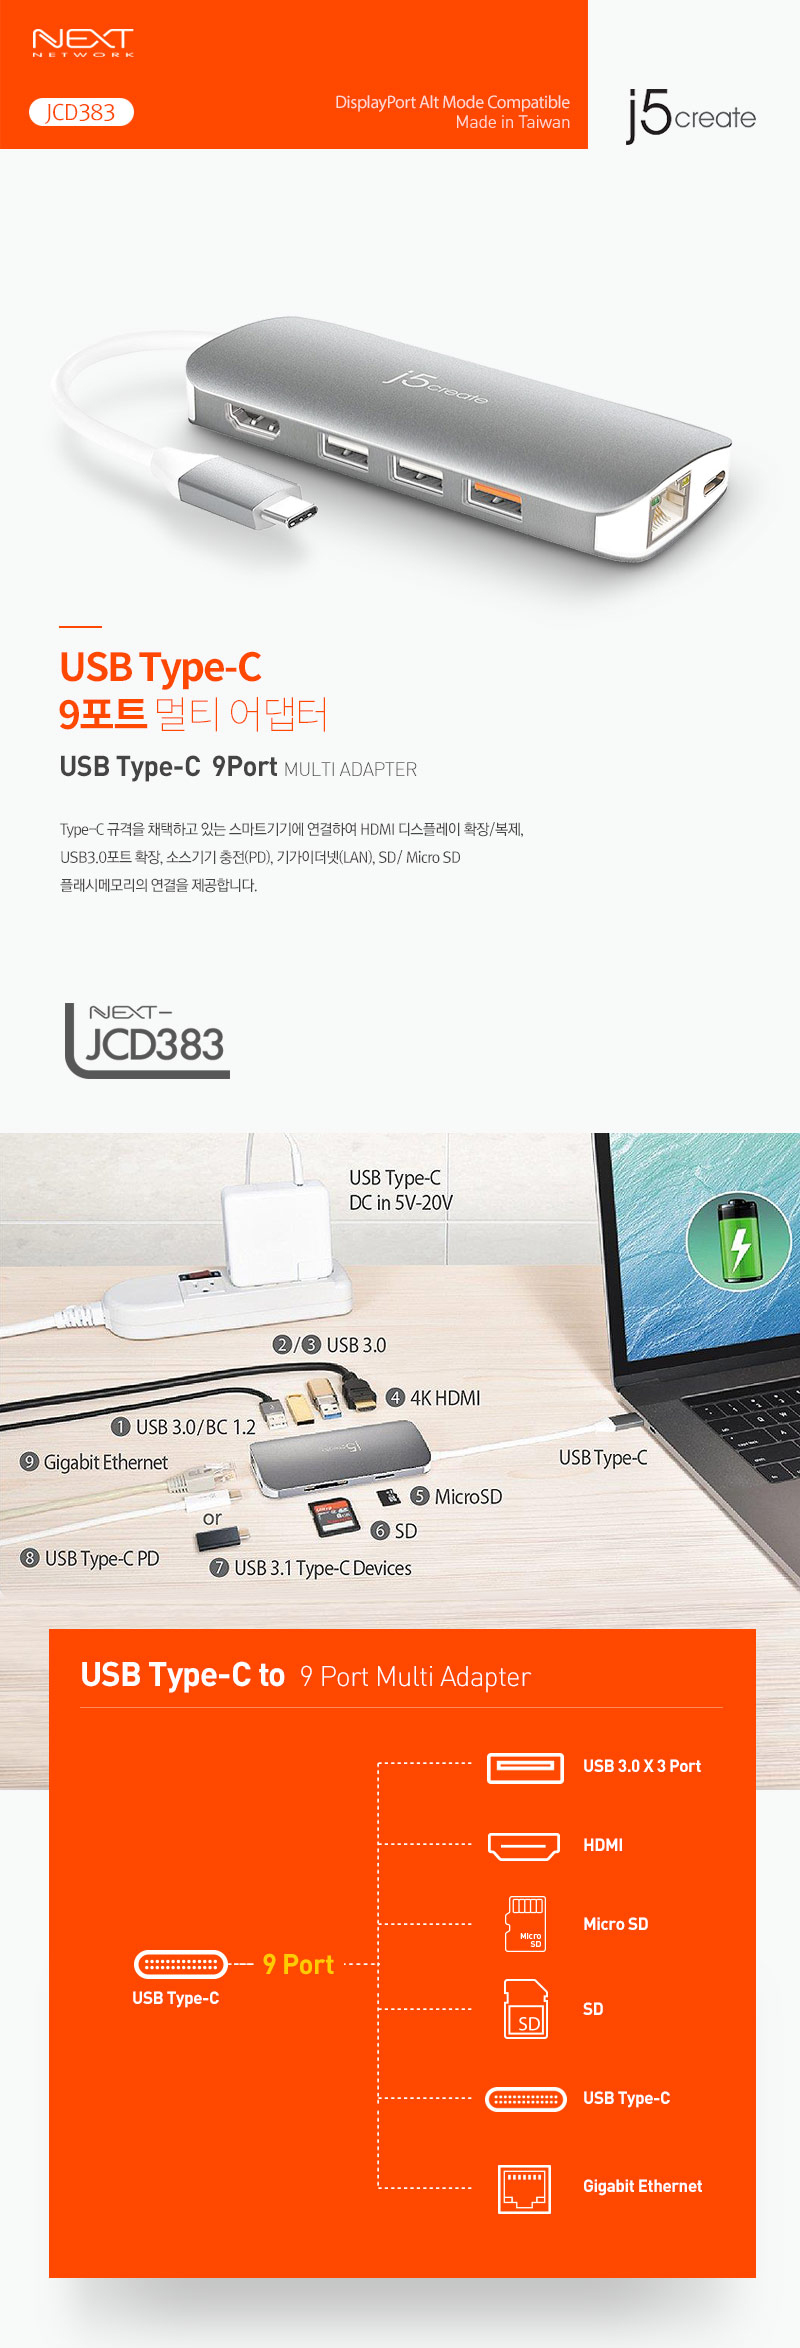 j5create  USB Type C 멀티 어댑터 (JCD383)